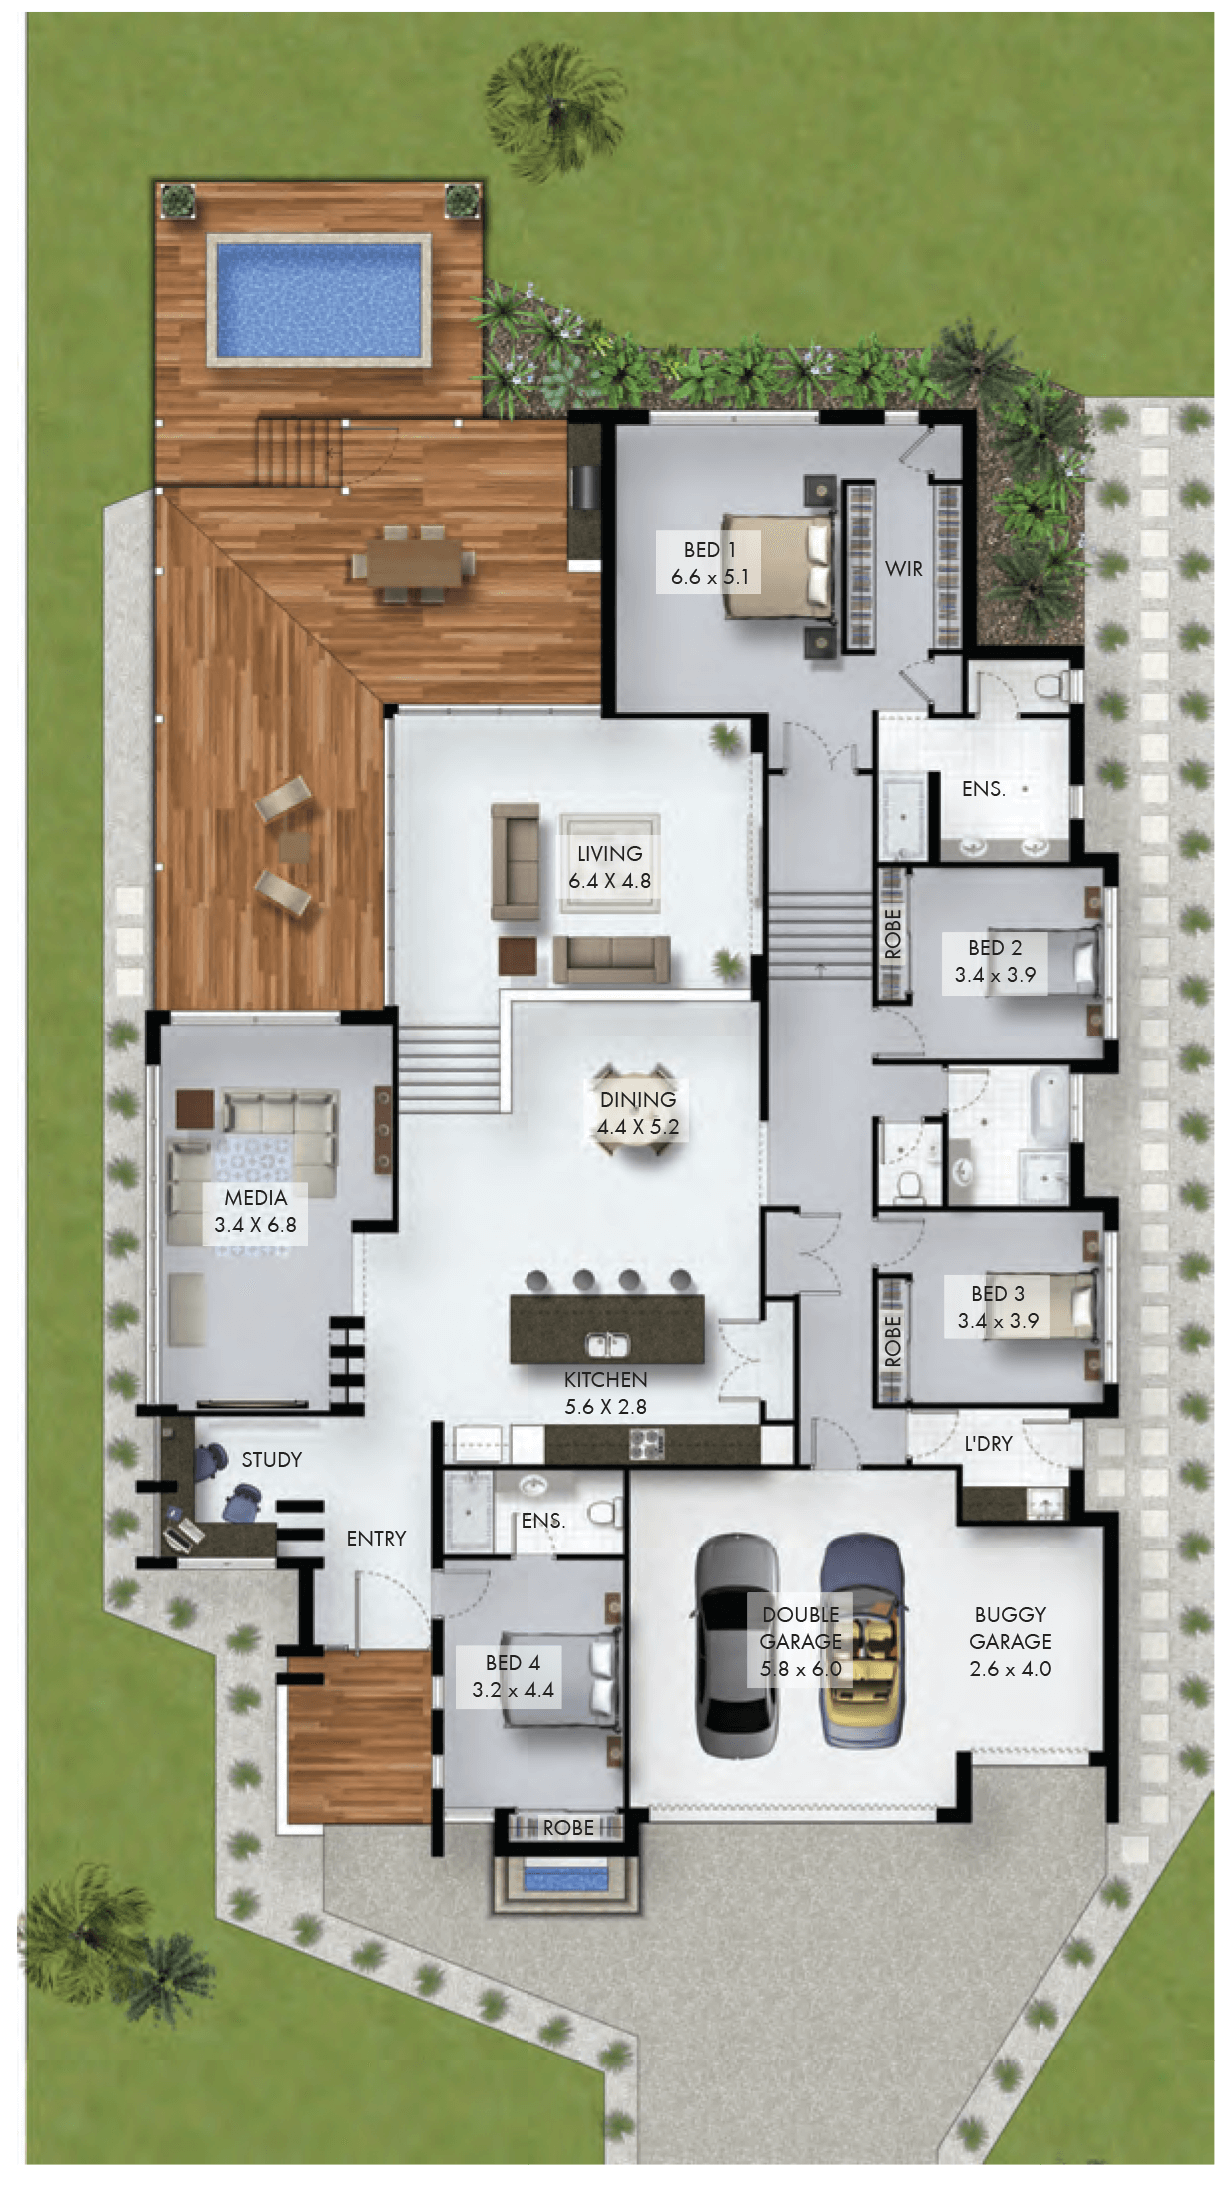 4 bedroom home with study nook and triple car garage for 3 bedroom ensuite house plans